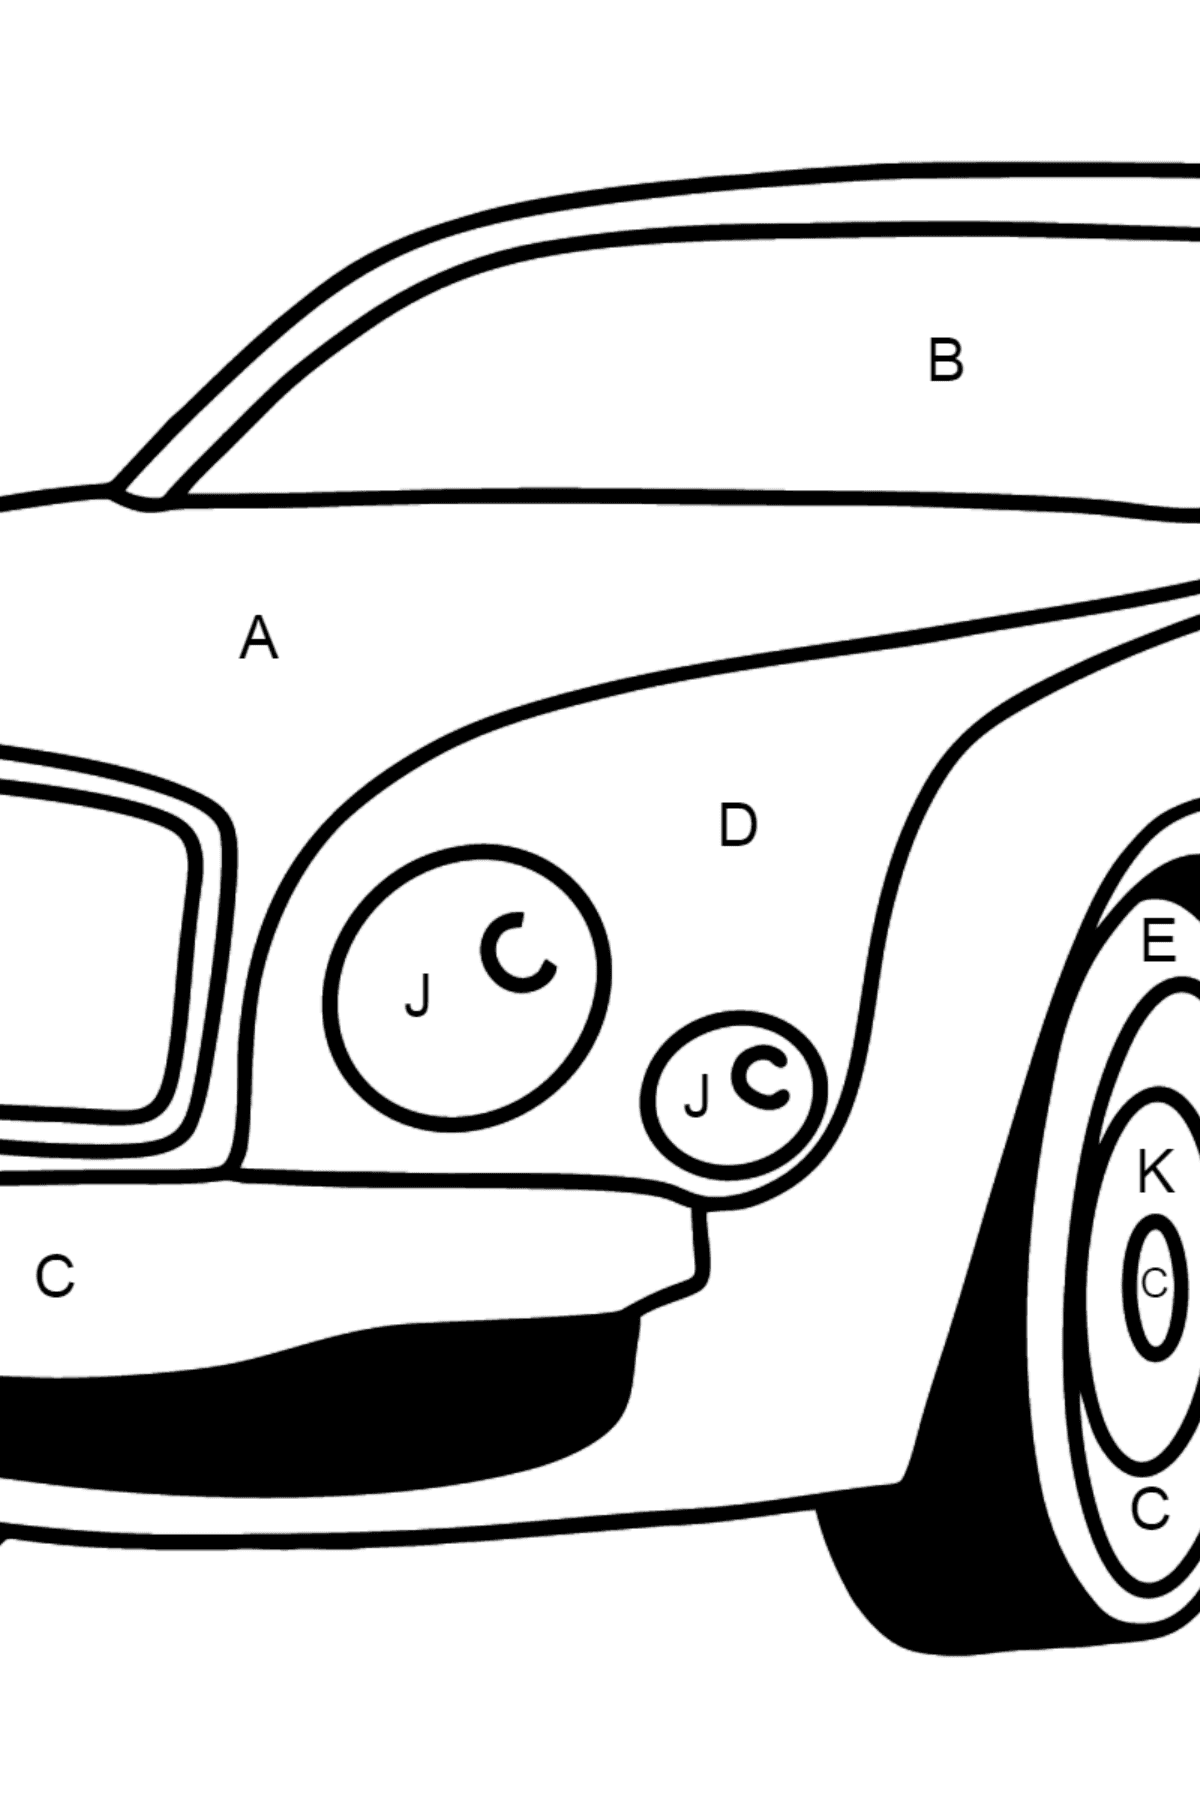 Bentley Mulsanne Car Coloring Page - Coloring by Letters for Kids